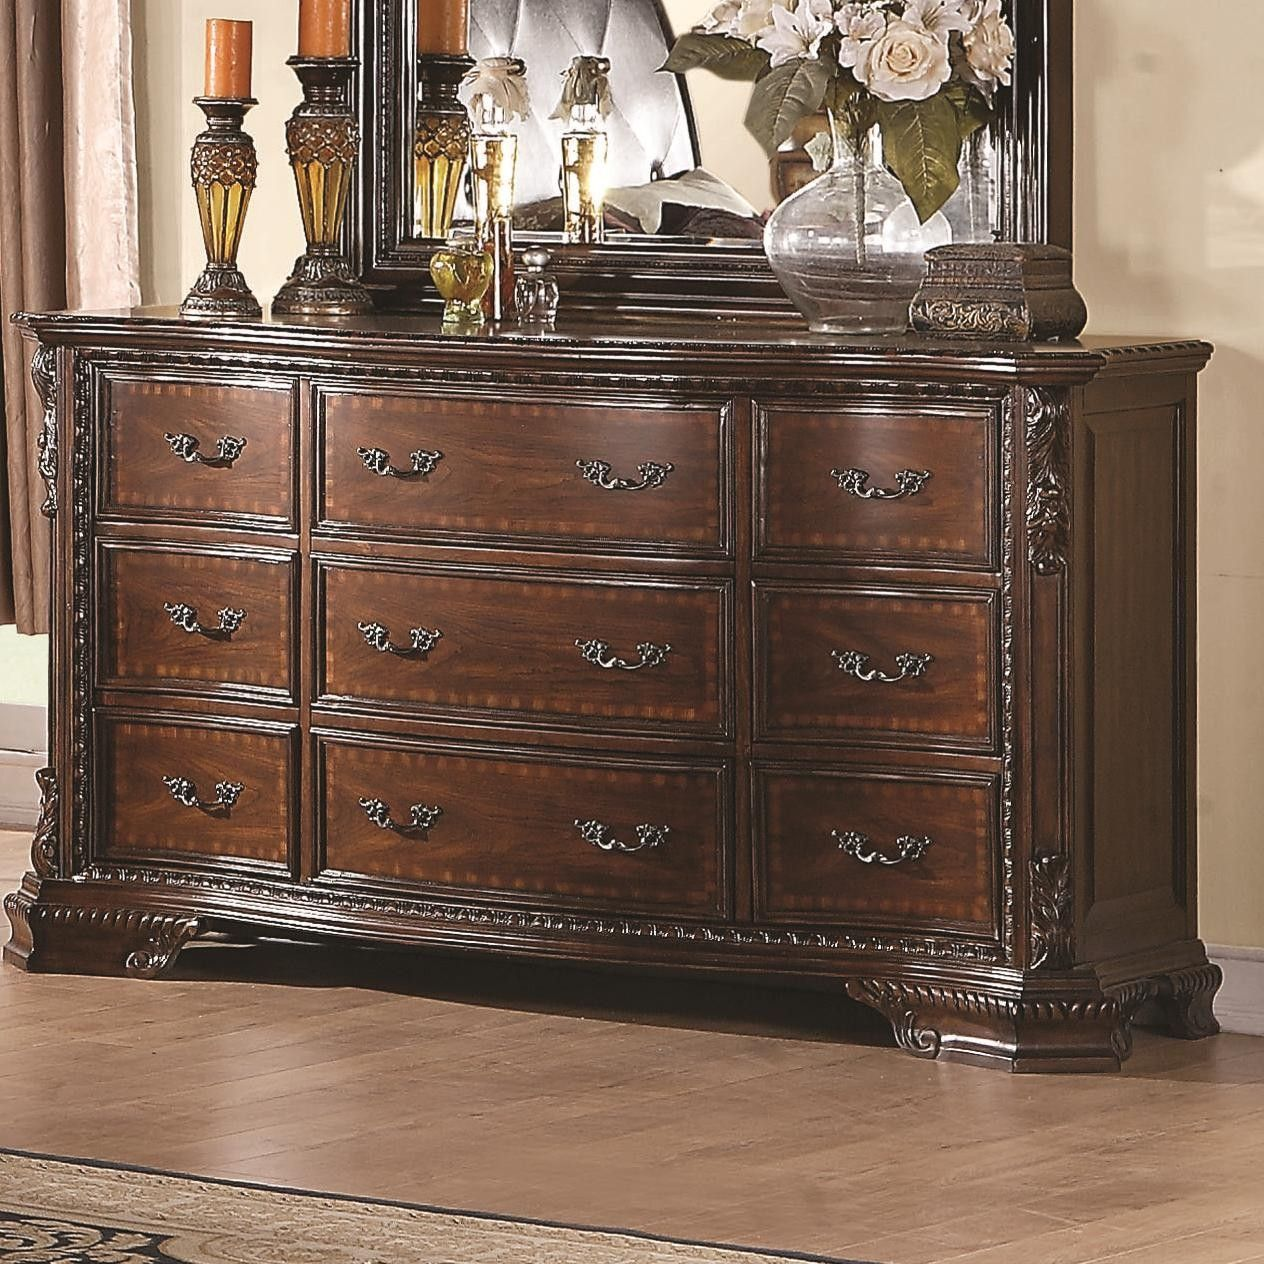 Coaster Furniture Maddison Drawer Dresser with Crowned